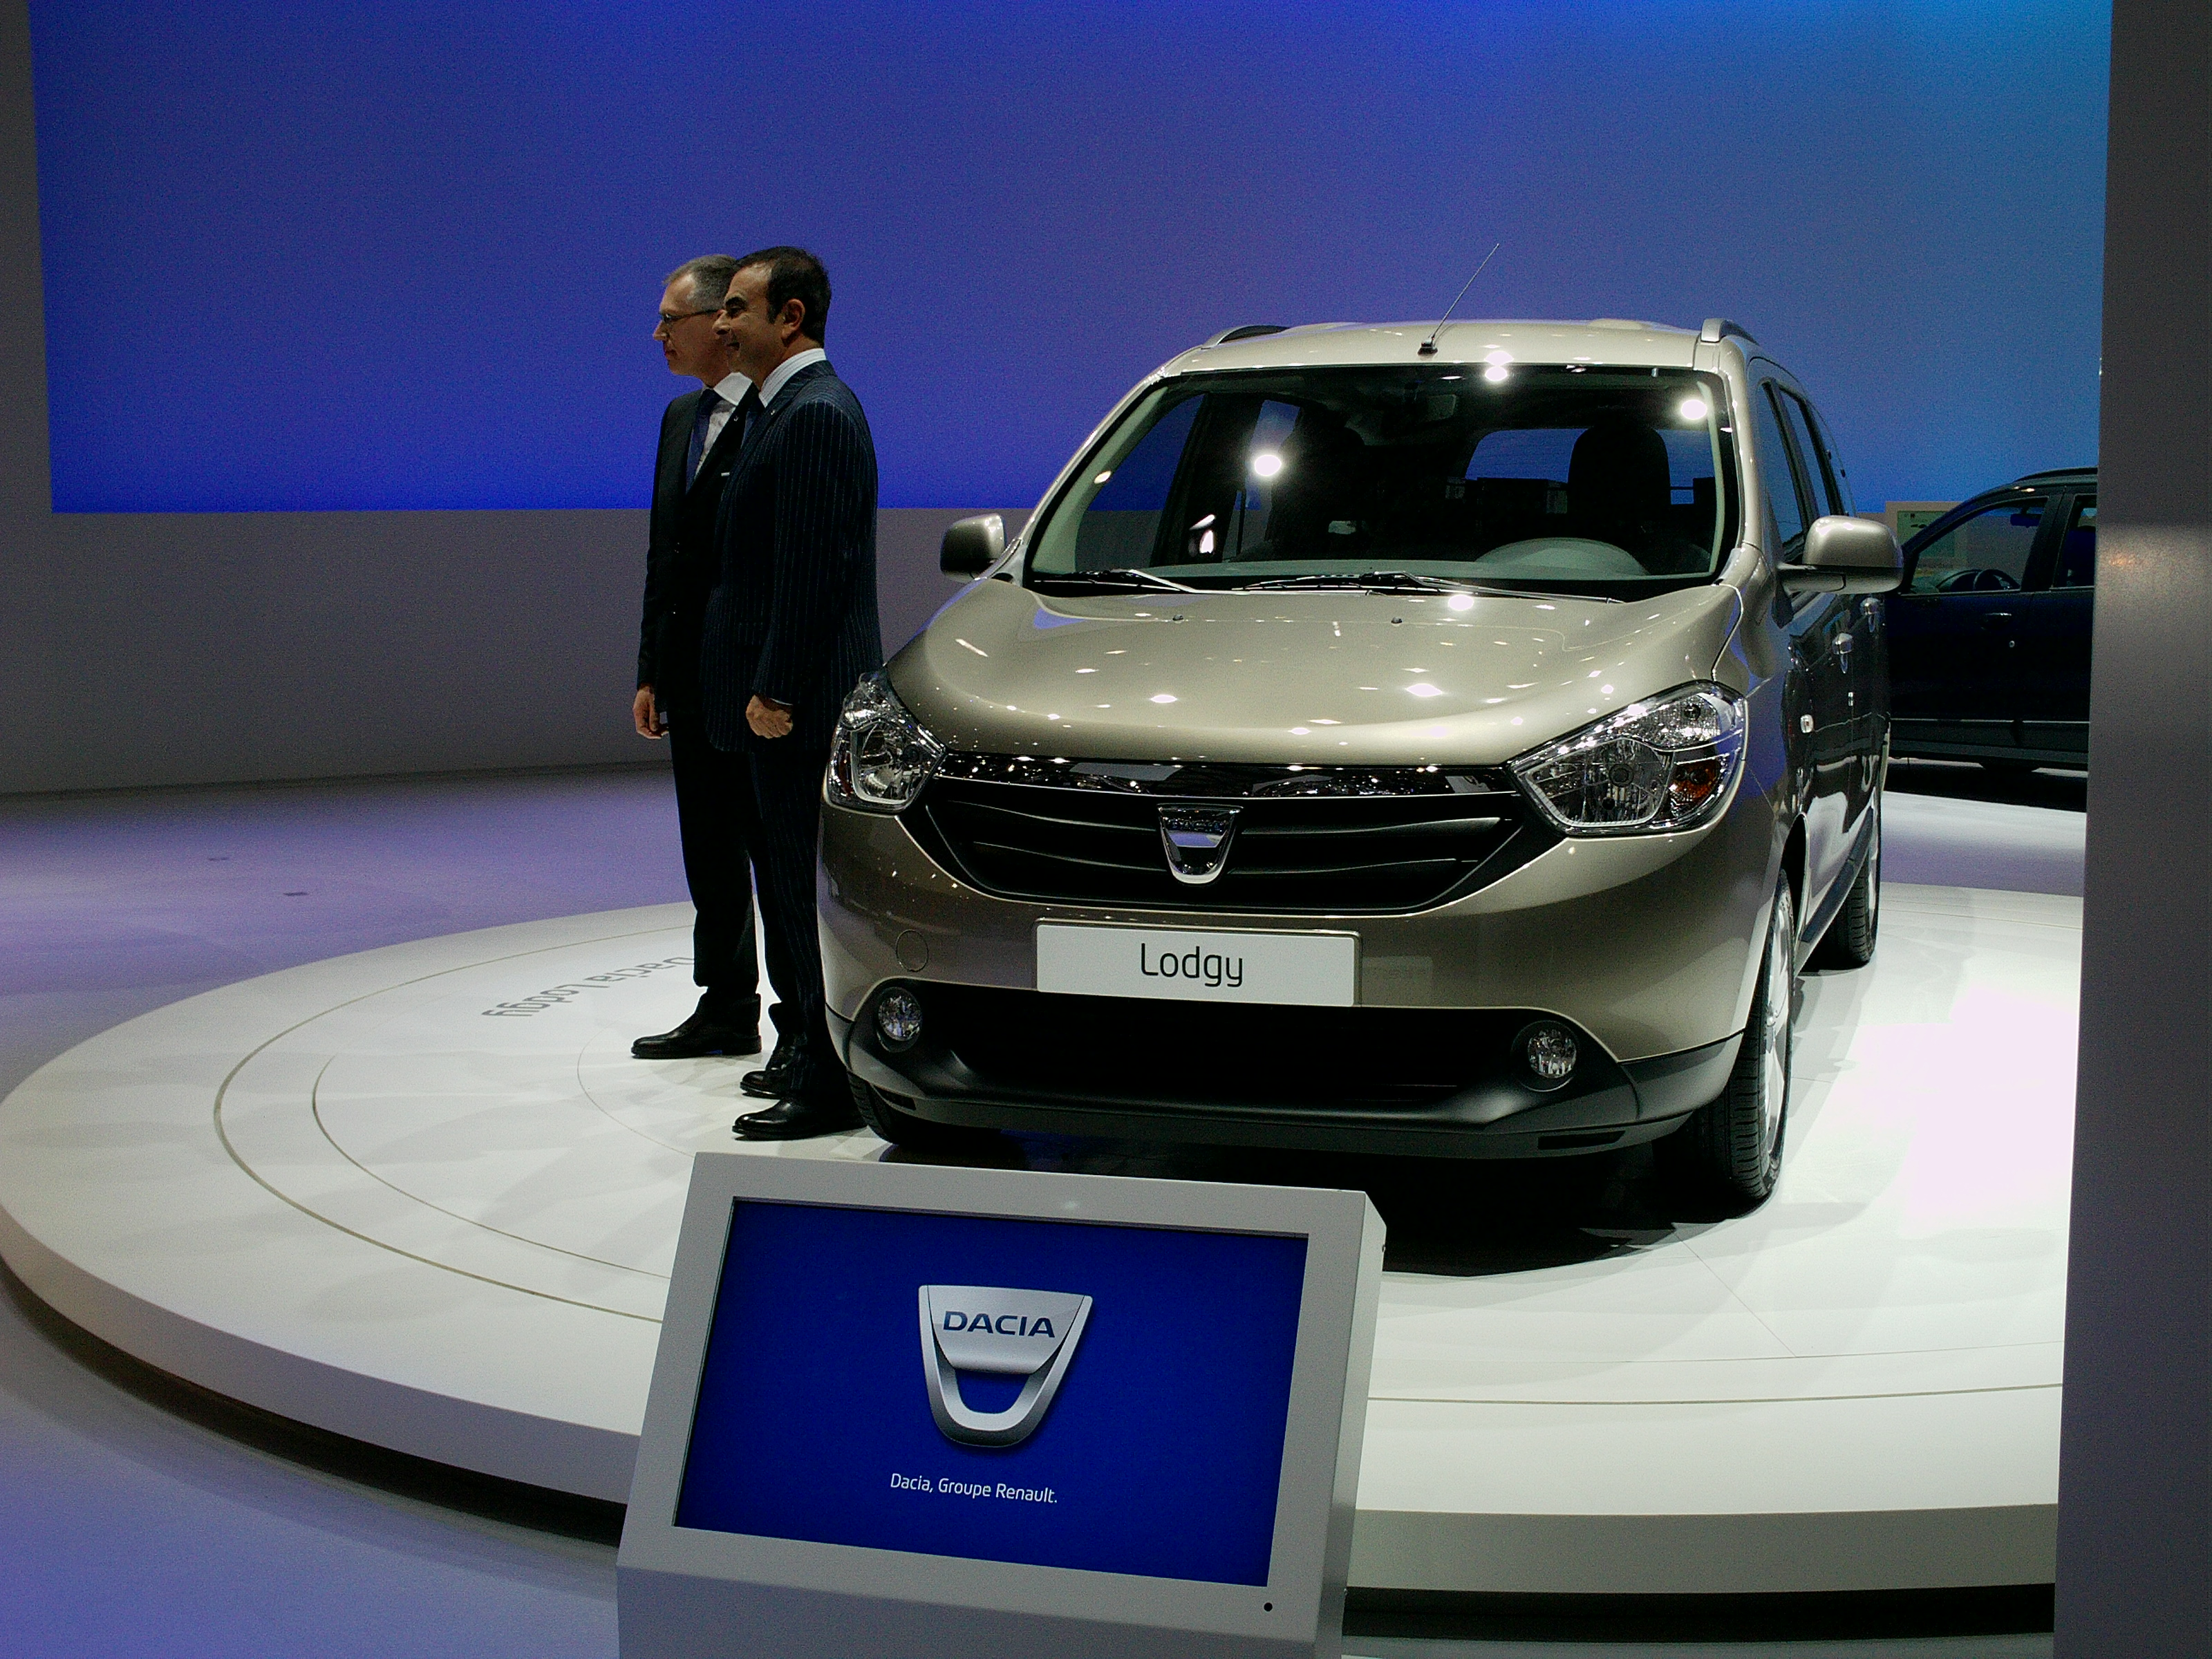 The Dacia Lodgy was presented at the Geneva Motor Show 2012